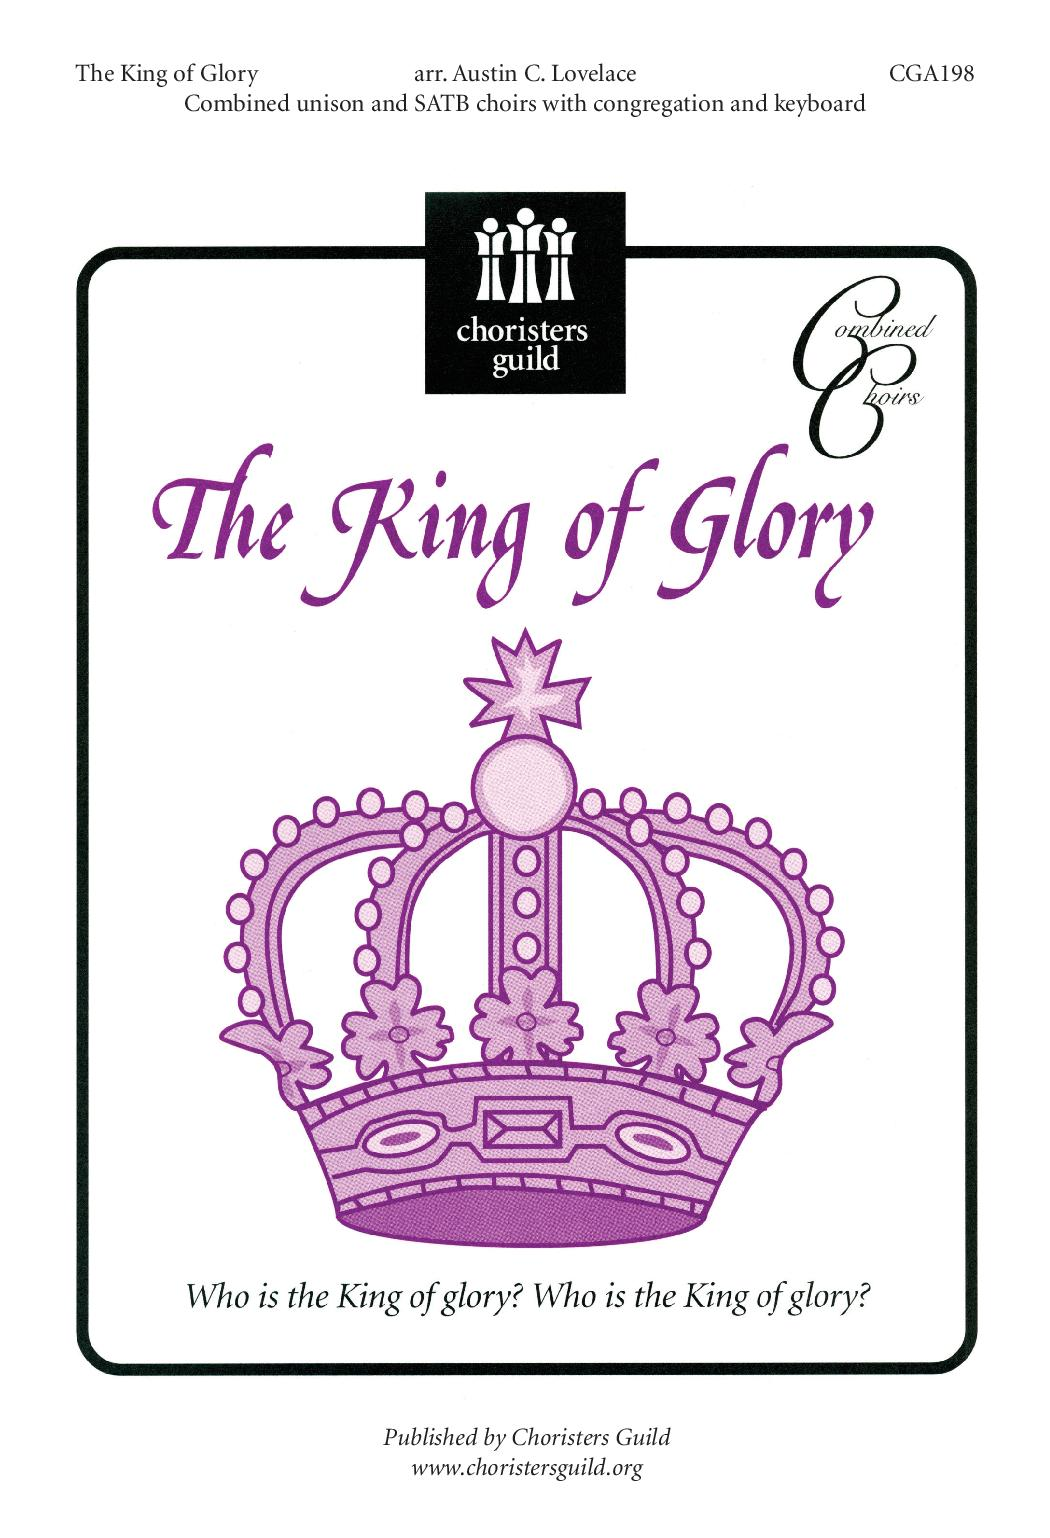 The King of Glory